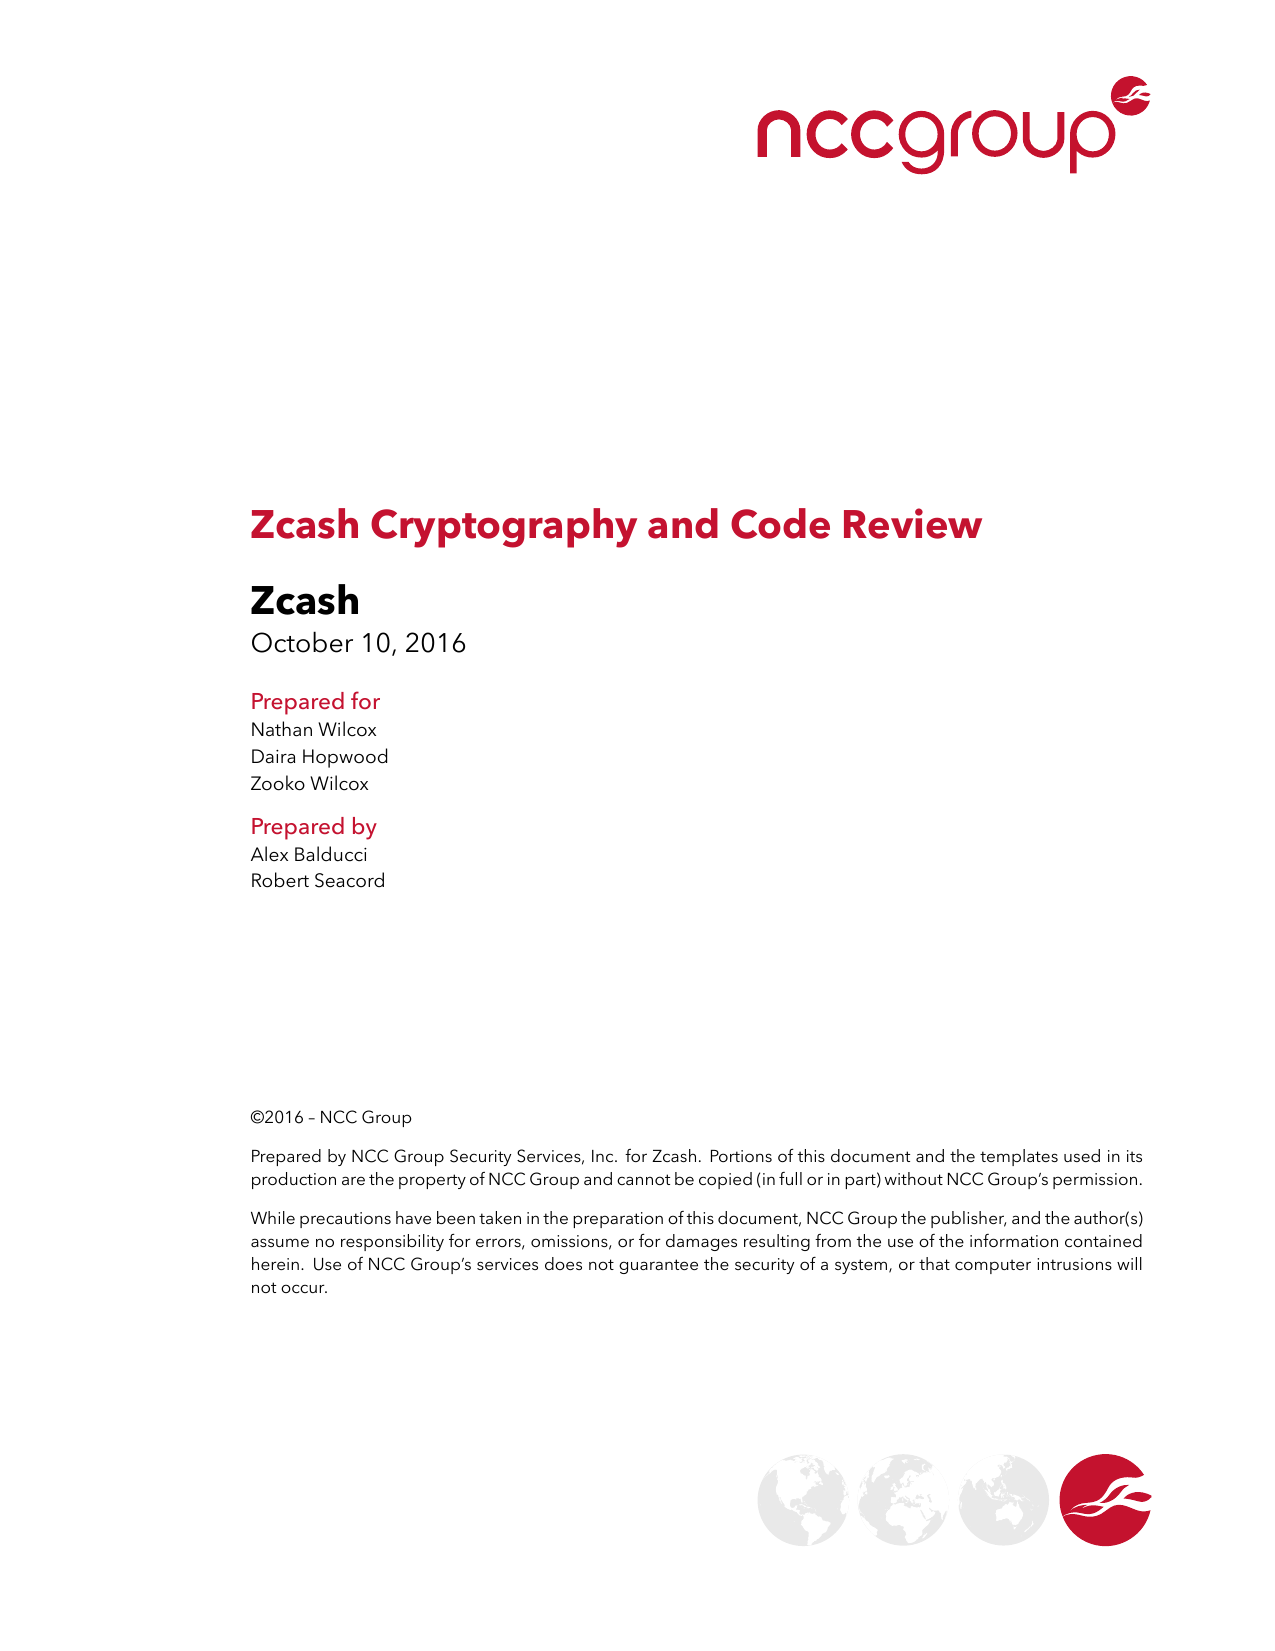 First page of the 'NCC Group Zcash Crypto Report 2016 -10-10' PDF